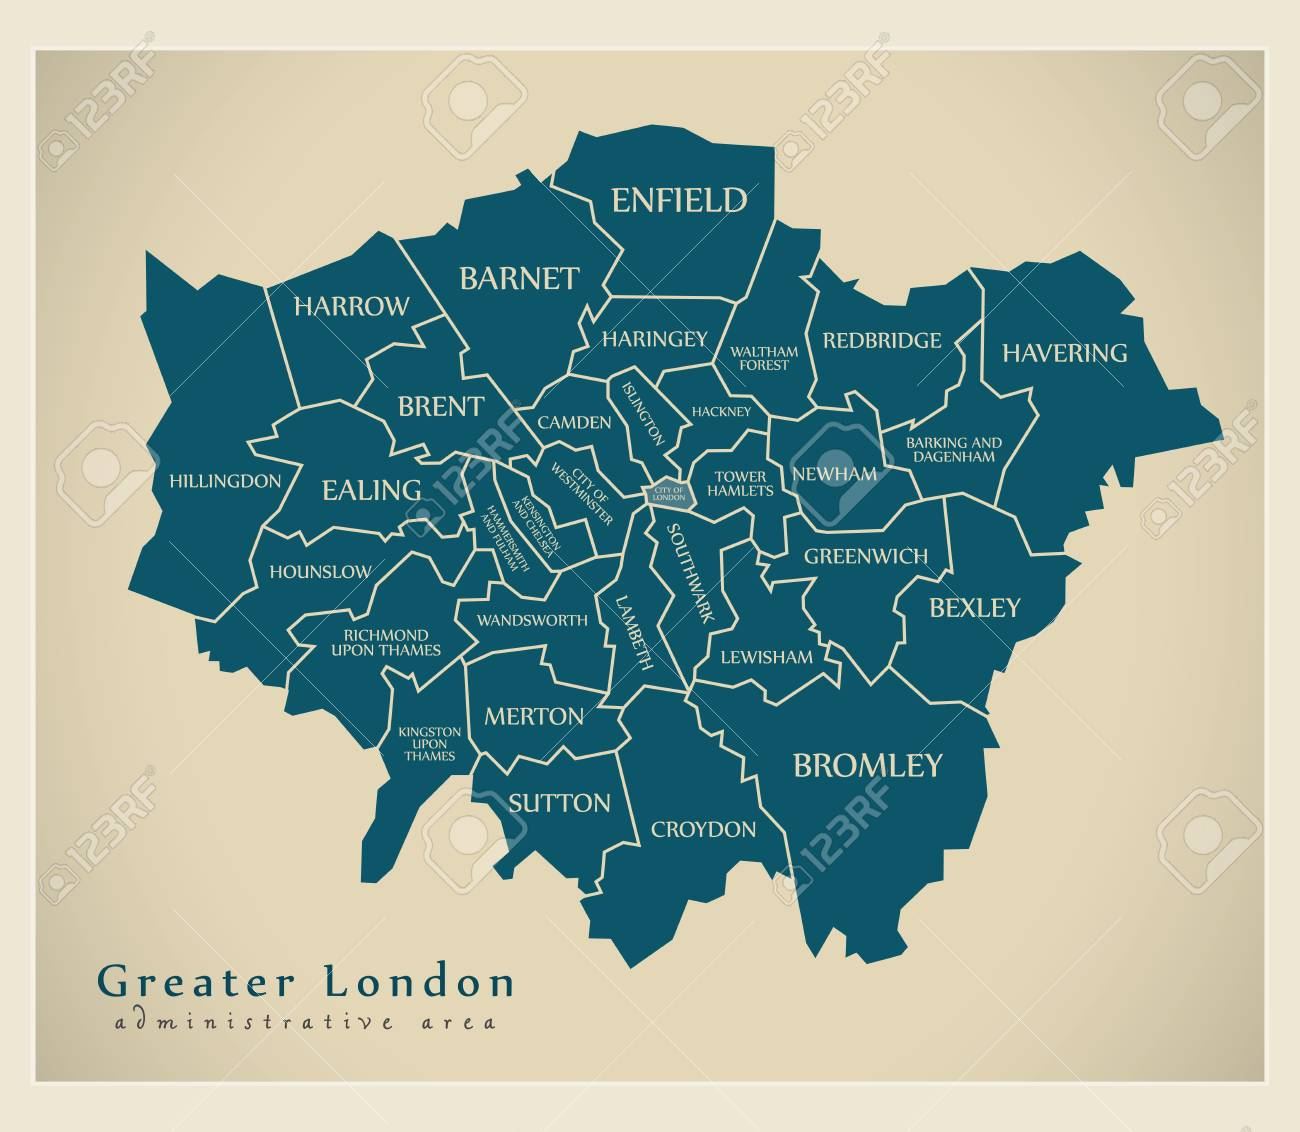 Map Of Greater London Area.Modern Map Greater London Labelled Districts Administrative